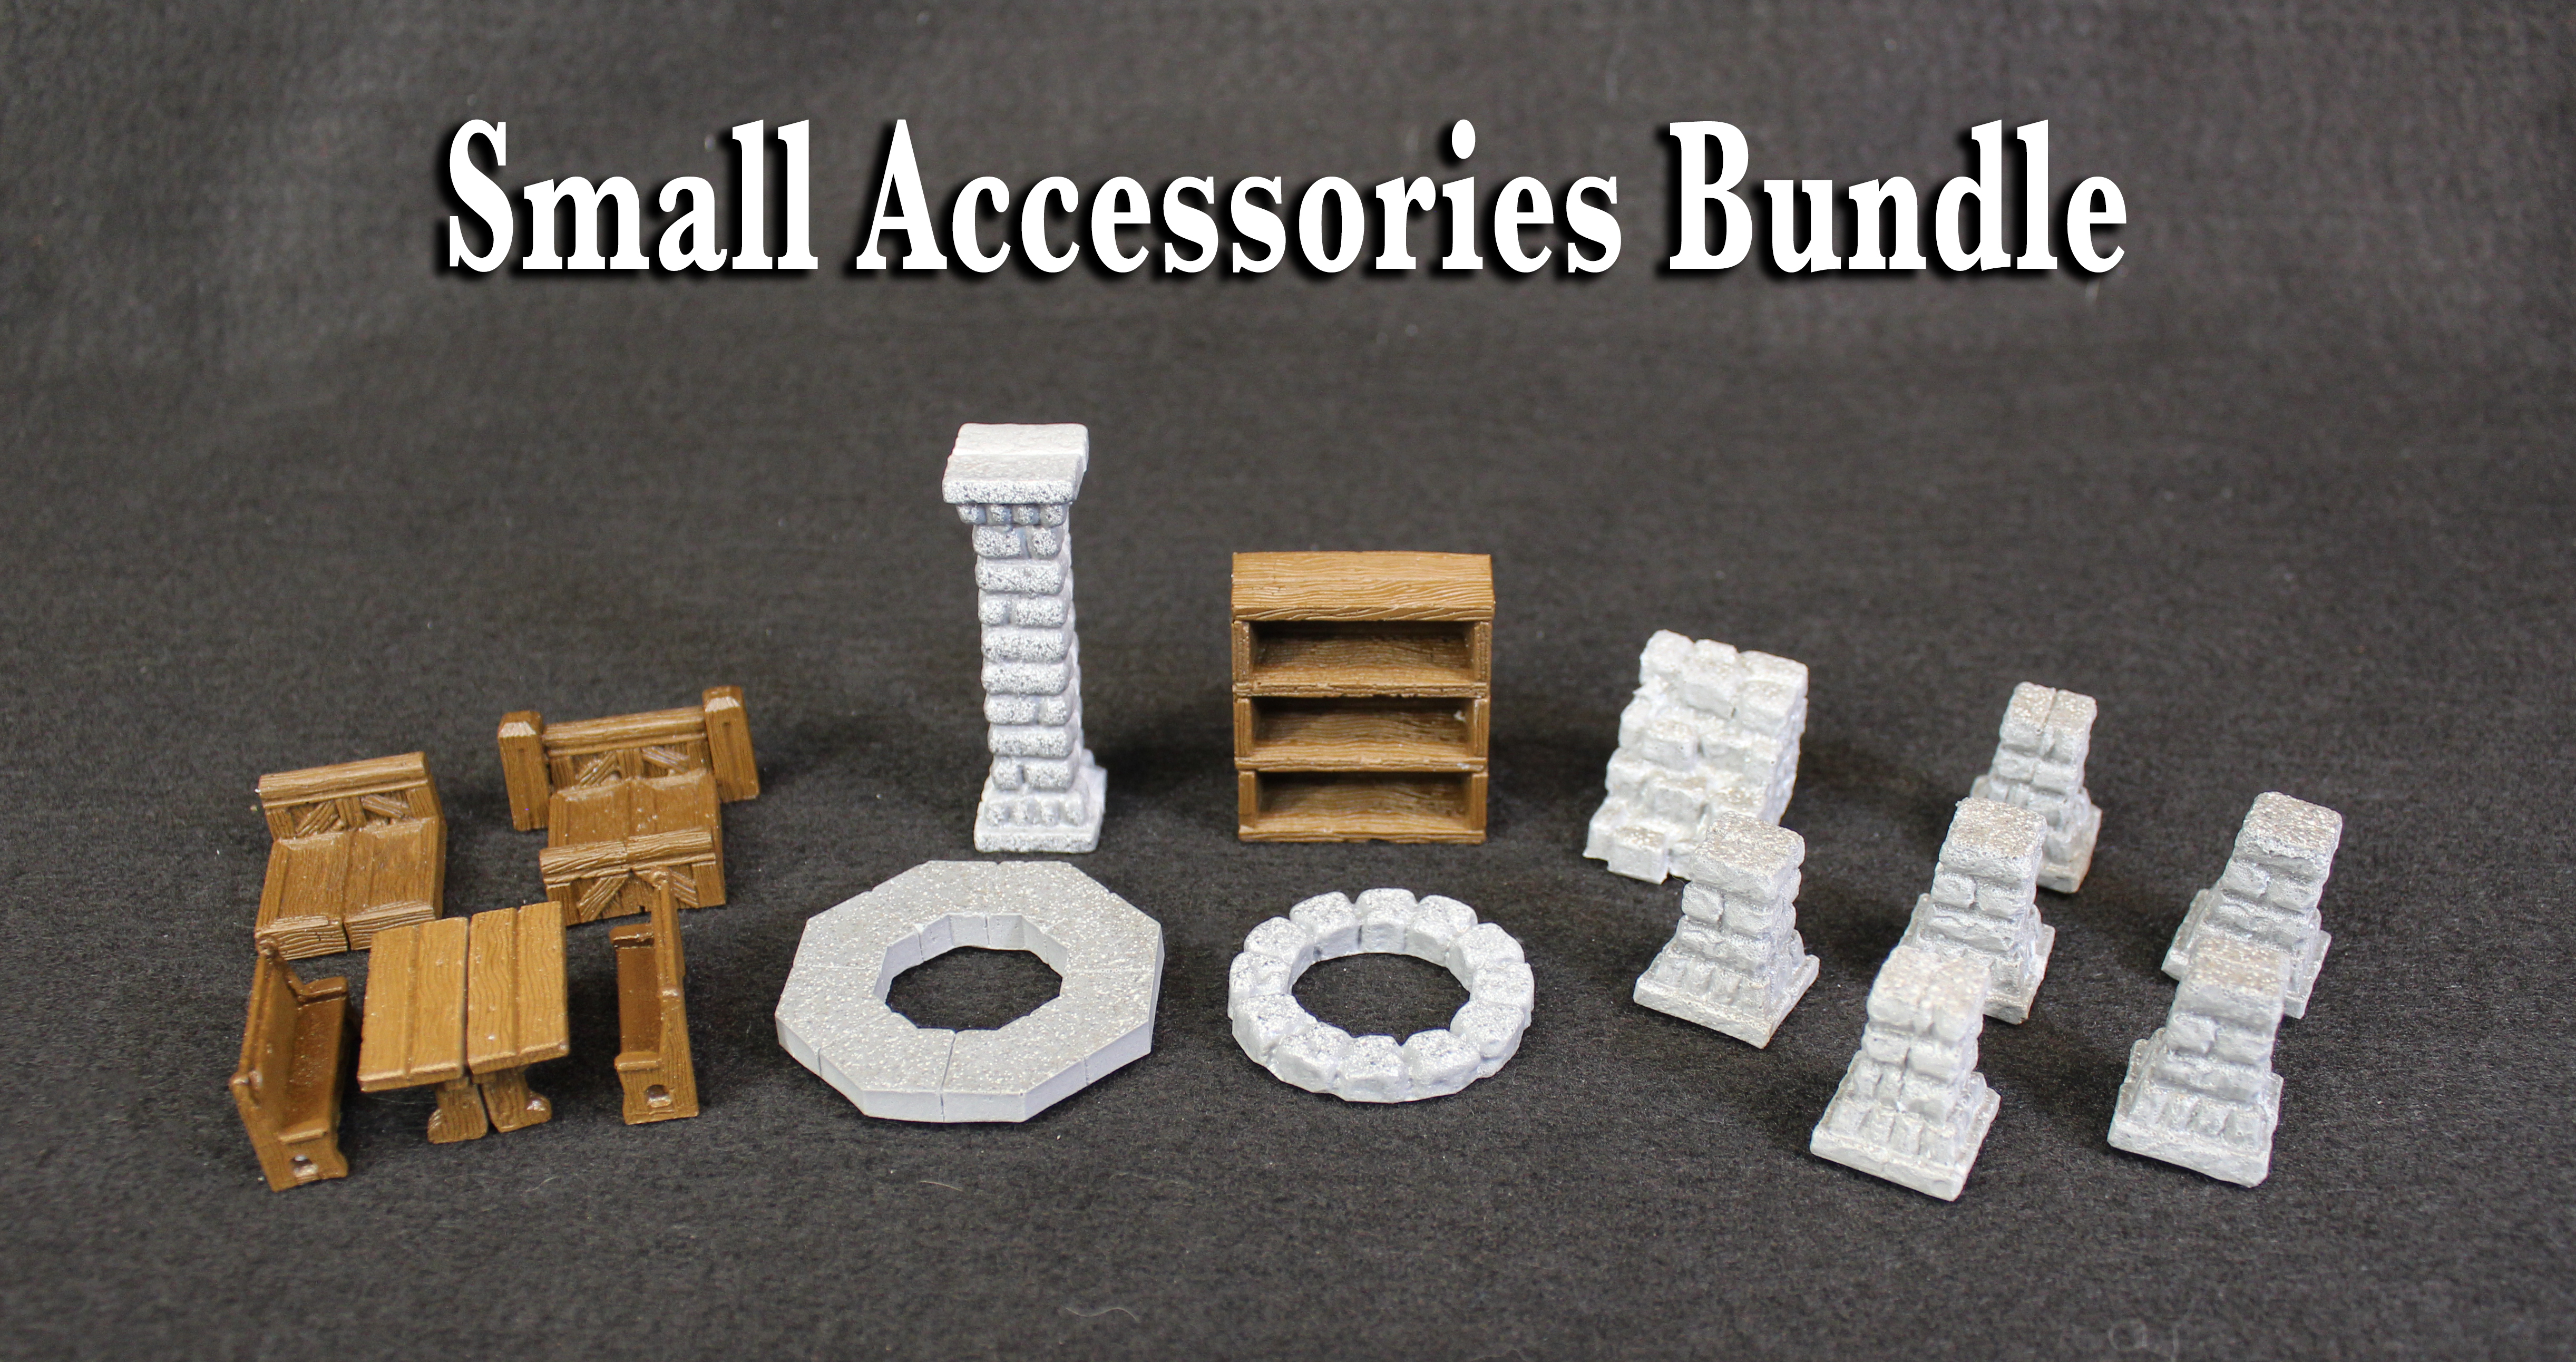 Accessories Bundle - Small 00003